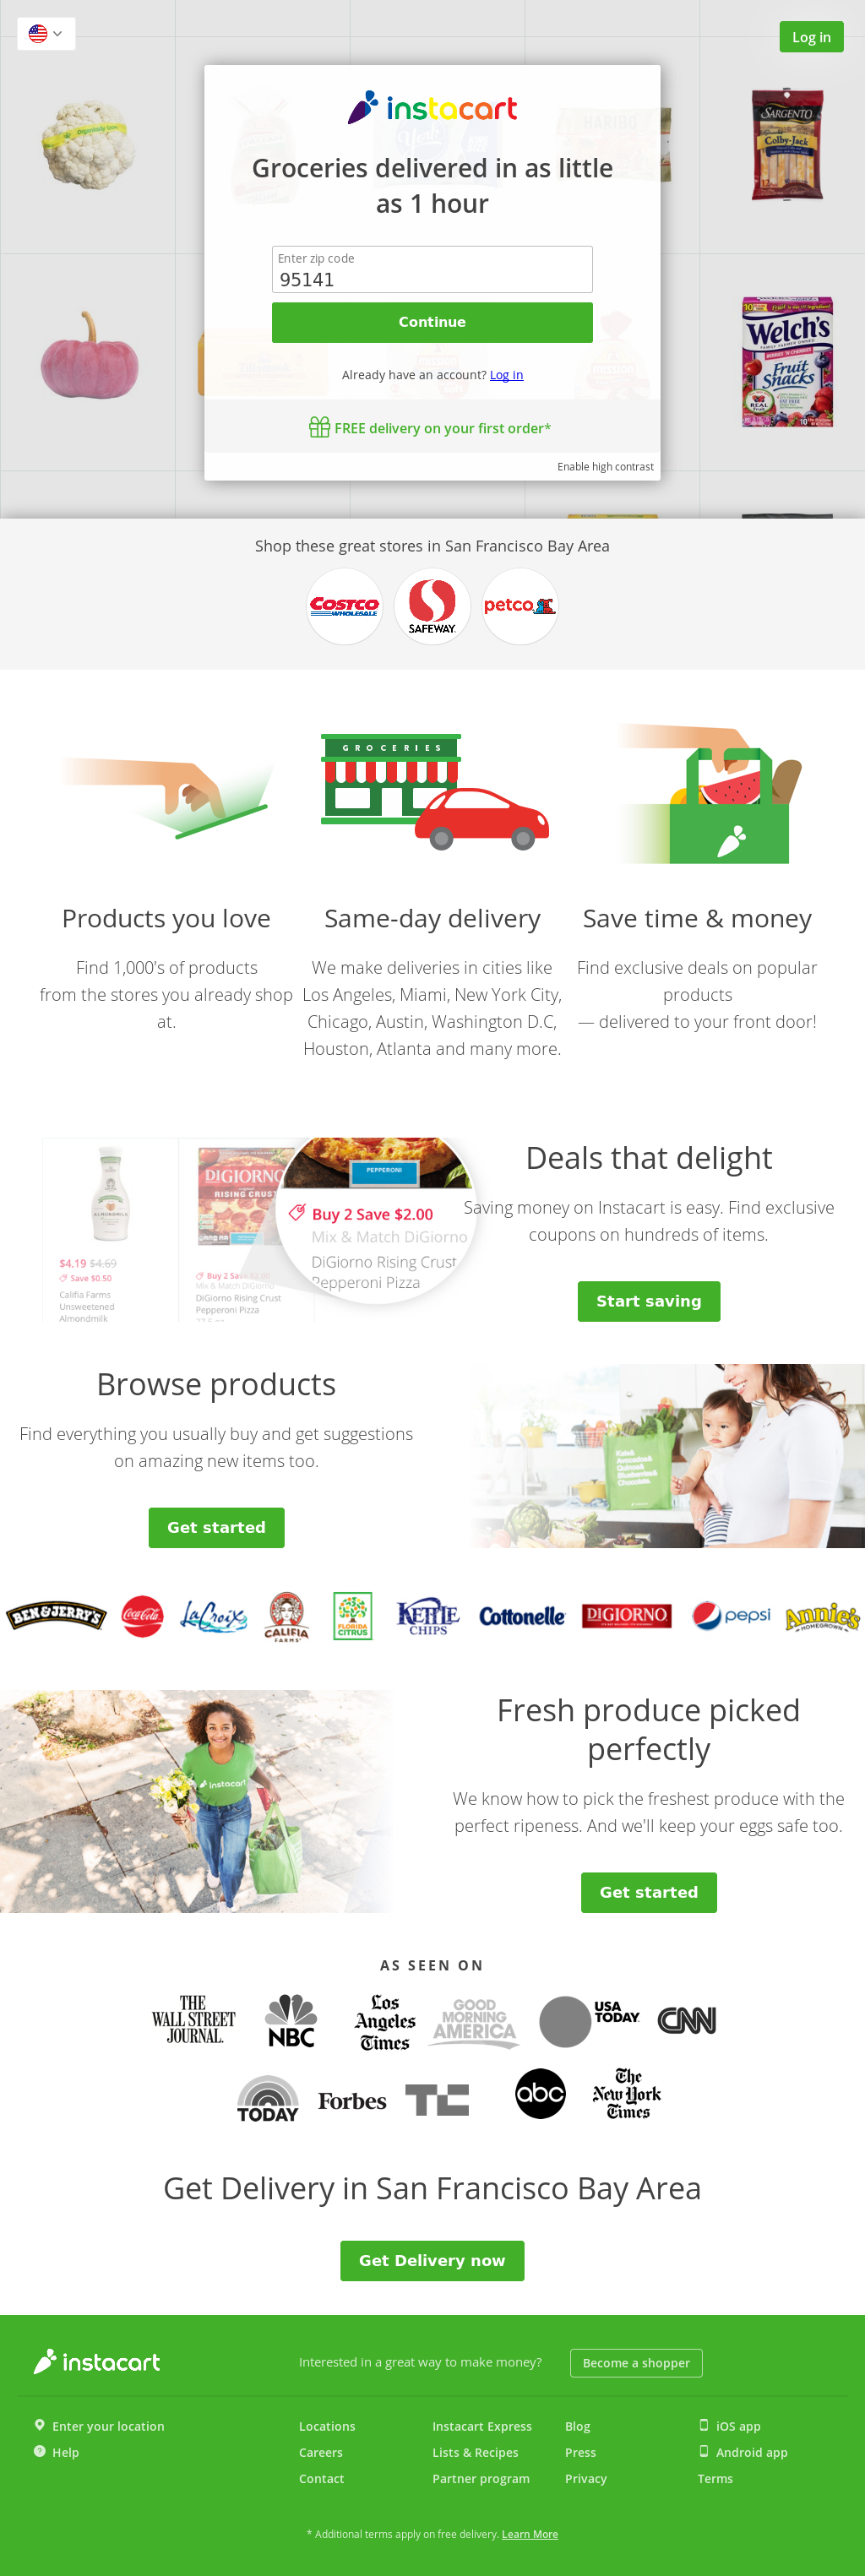 Instacart Competitors, Revenue and Employees - Owler Company Profile